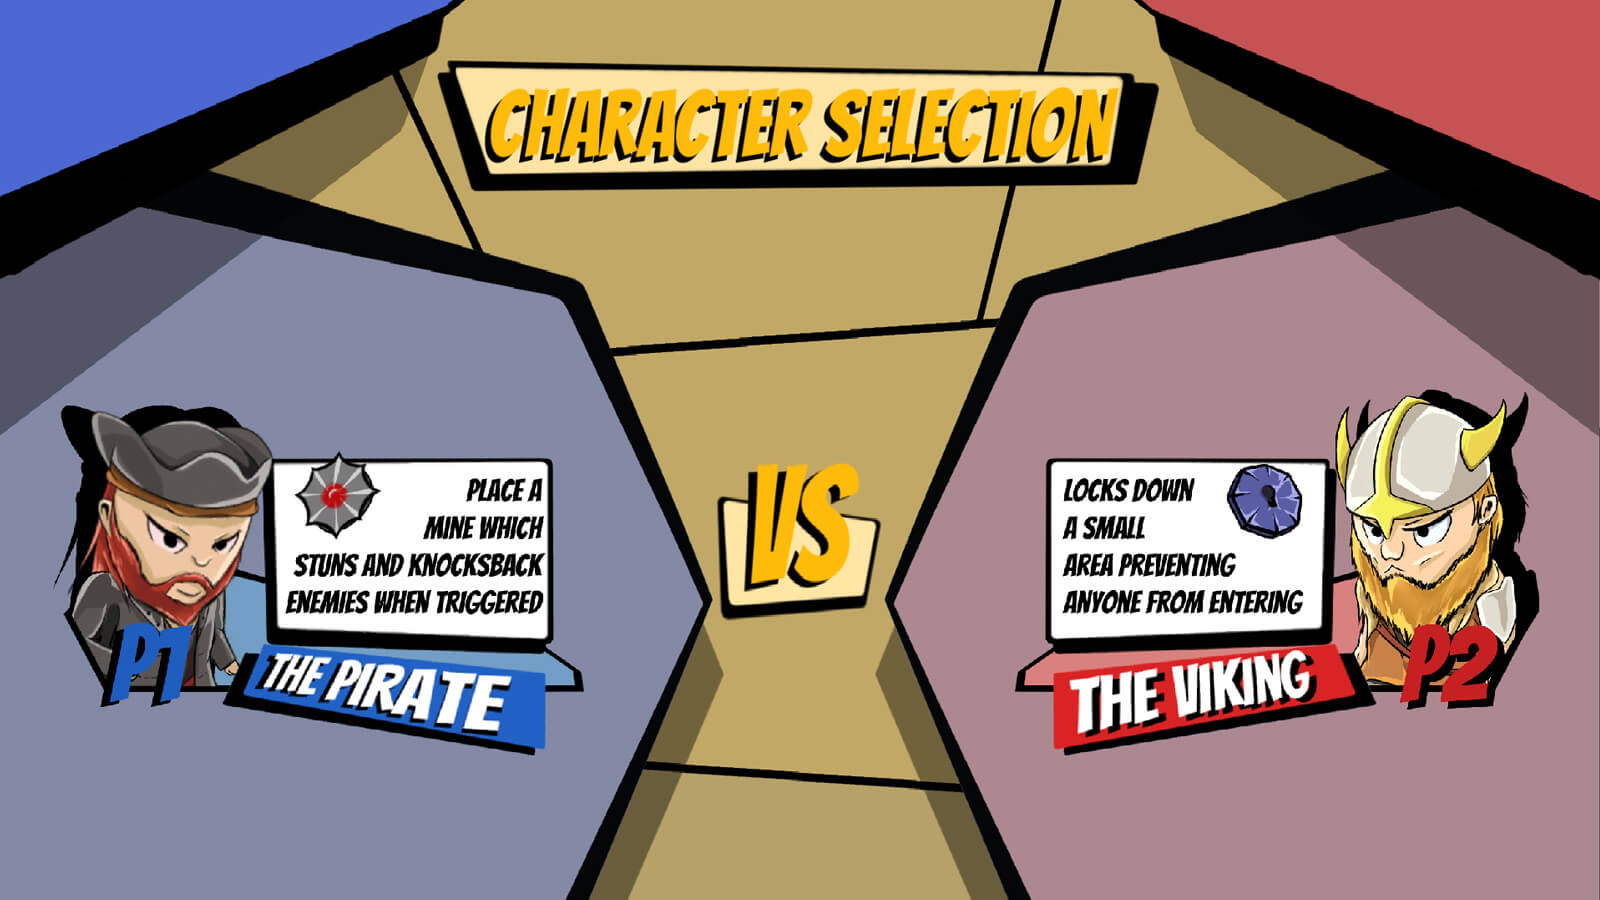 Character selection screen showing two playable characters: The Pirate and The Viking, and their special abilities